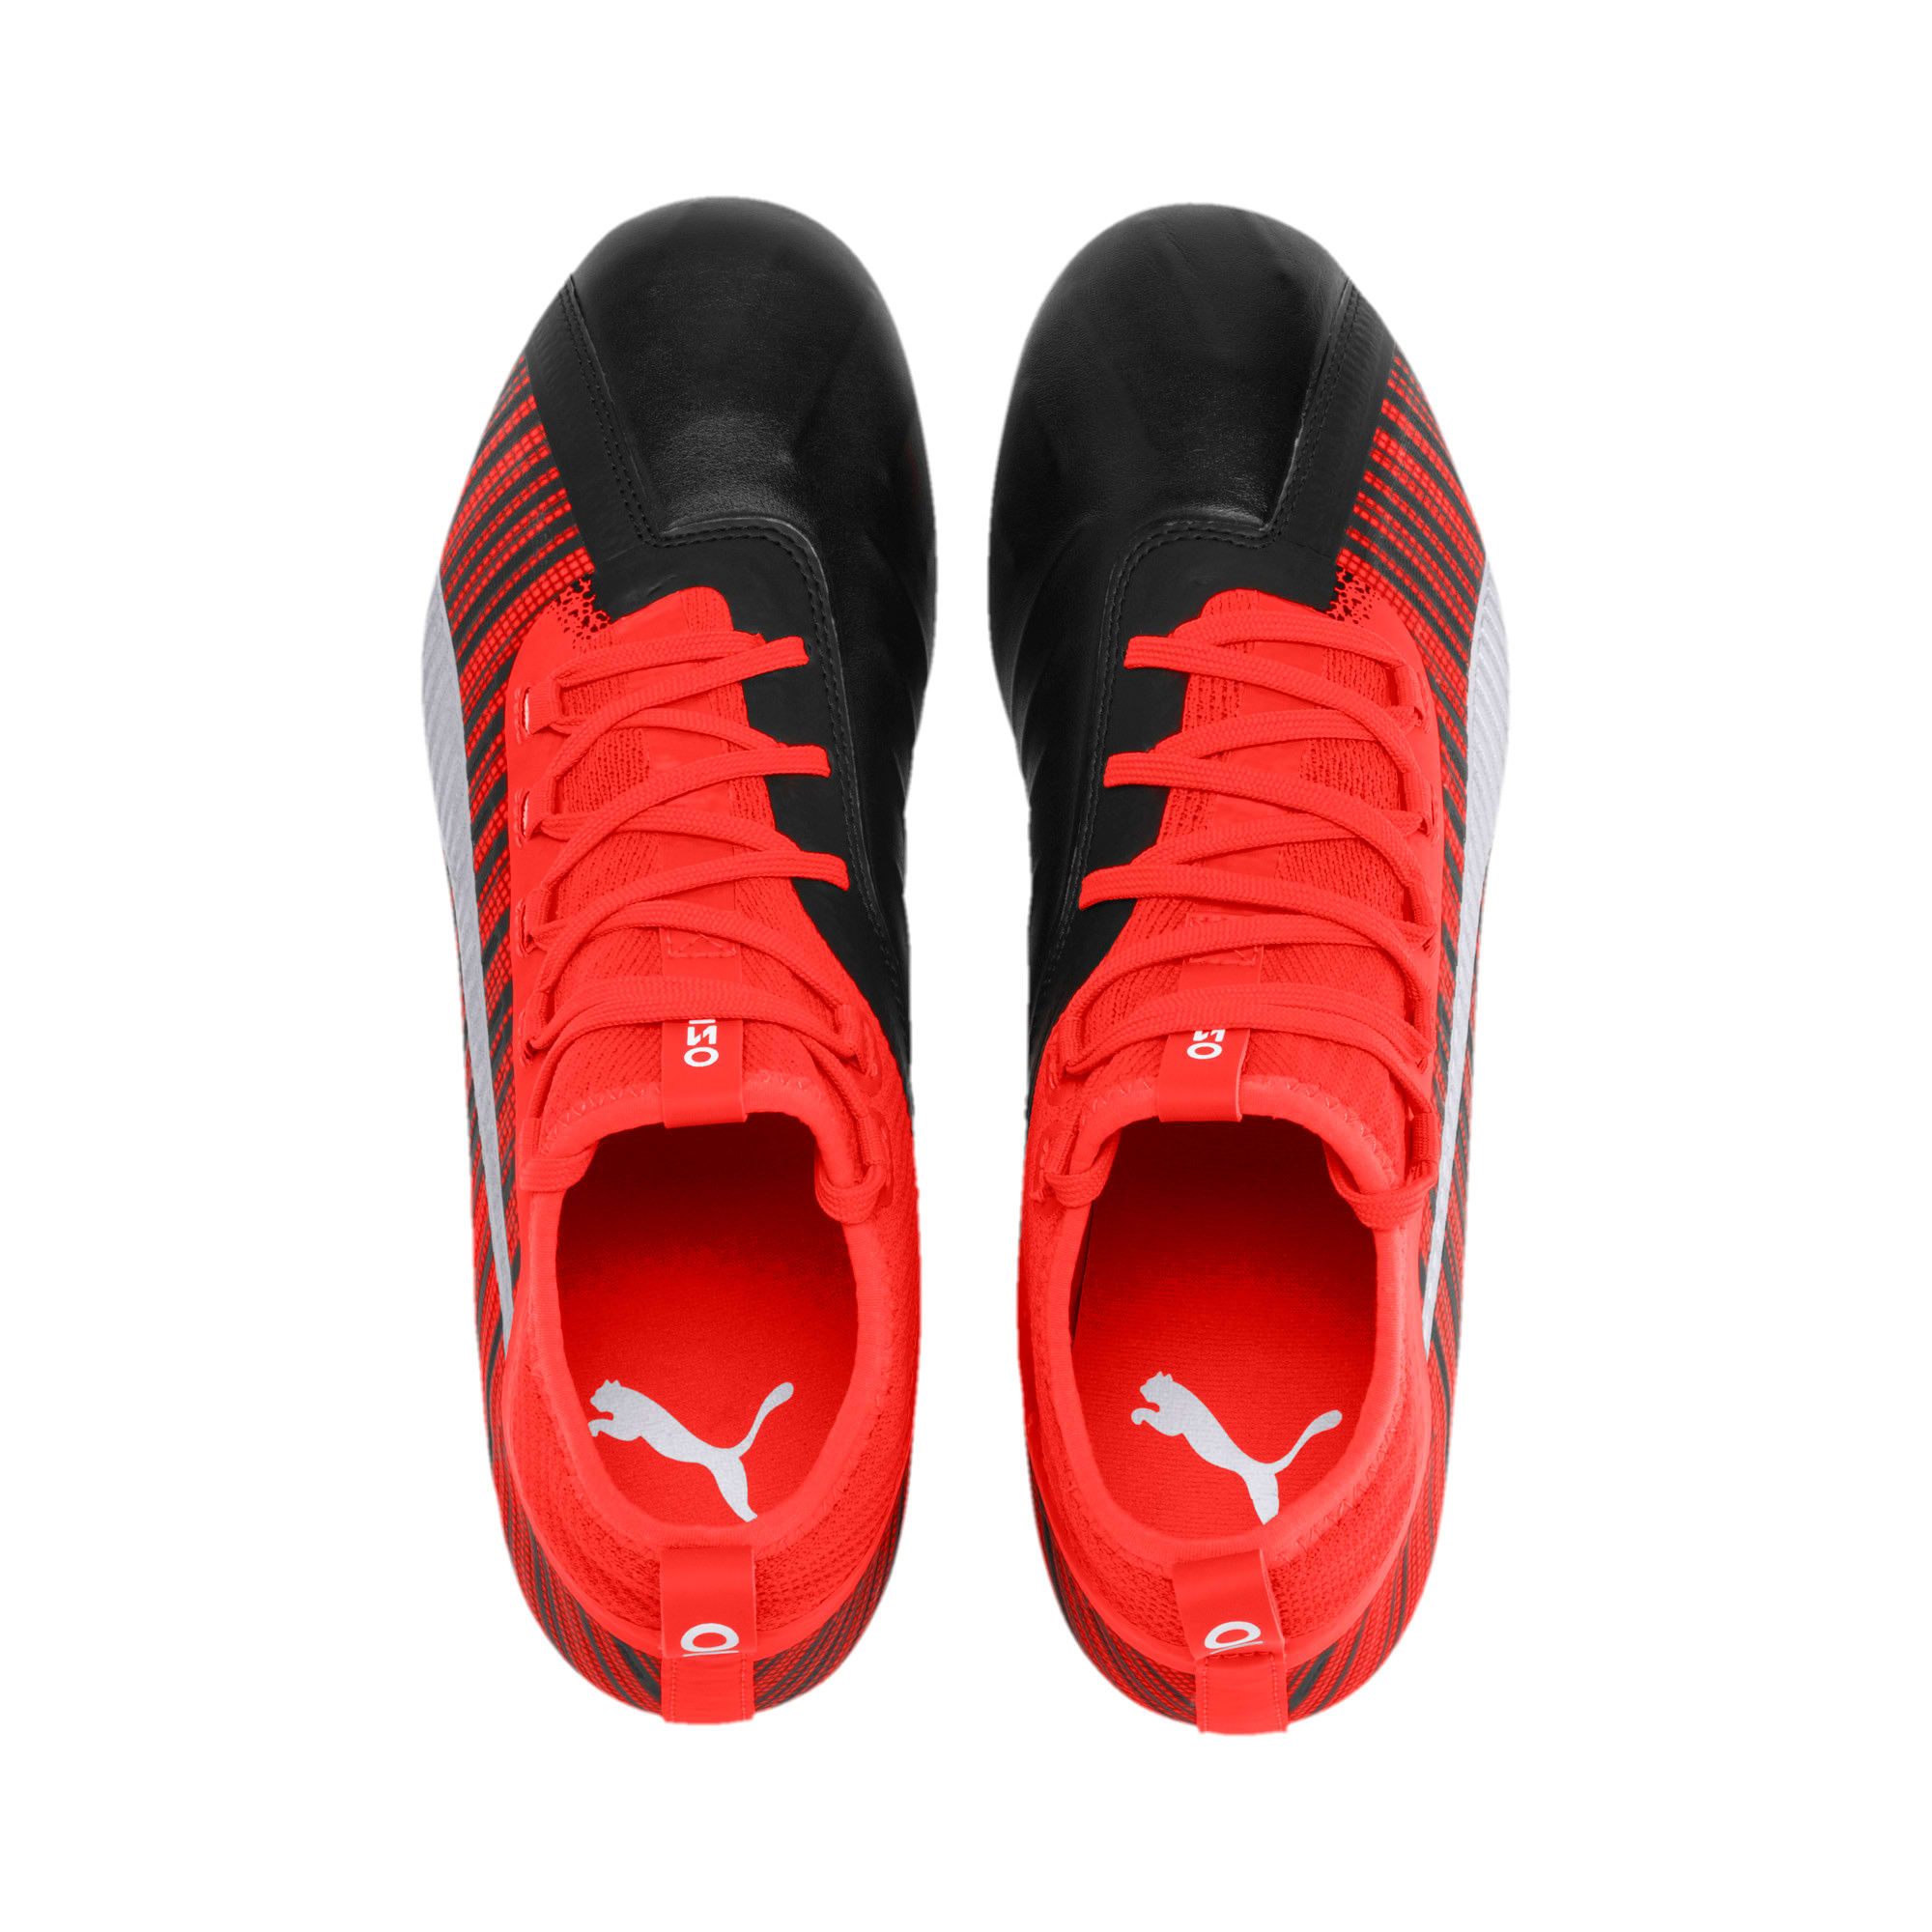 Thumbnail 7 of PUMA ONE 5.2 Men's Football Boots, Black-Nrgy Red-Aged Silver, medium